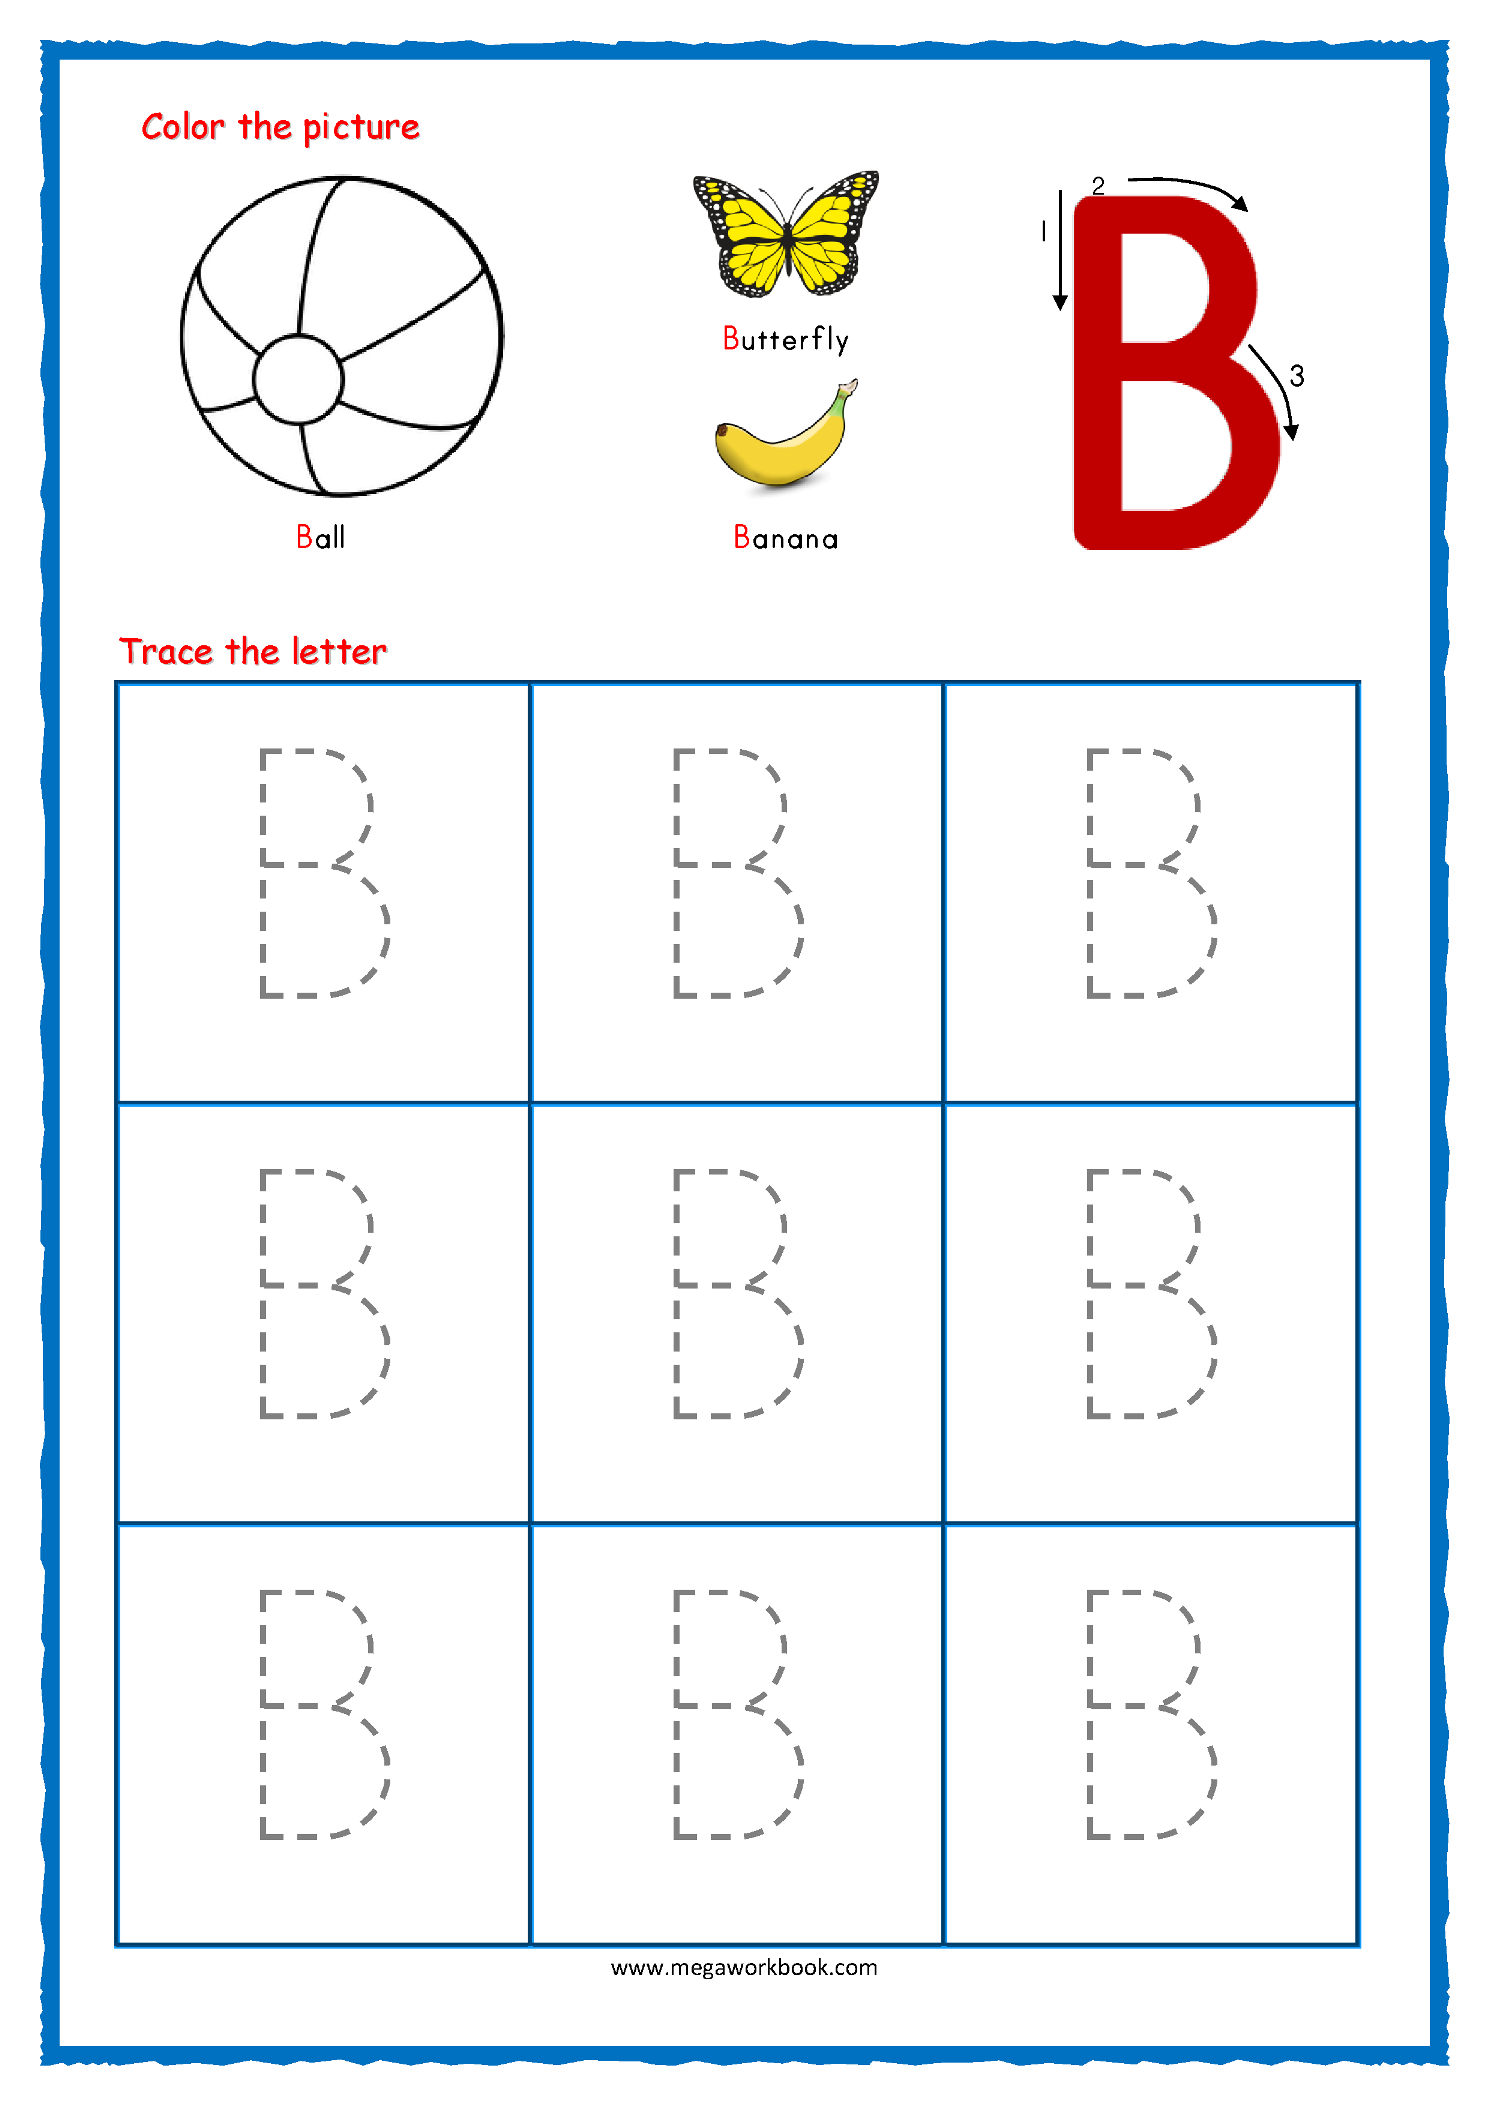 Tracing Letters - Alphabet Tracing - Capital Letters regarding Alphabet Tracing Letters For Preschoolers